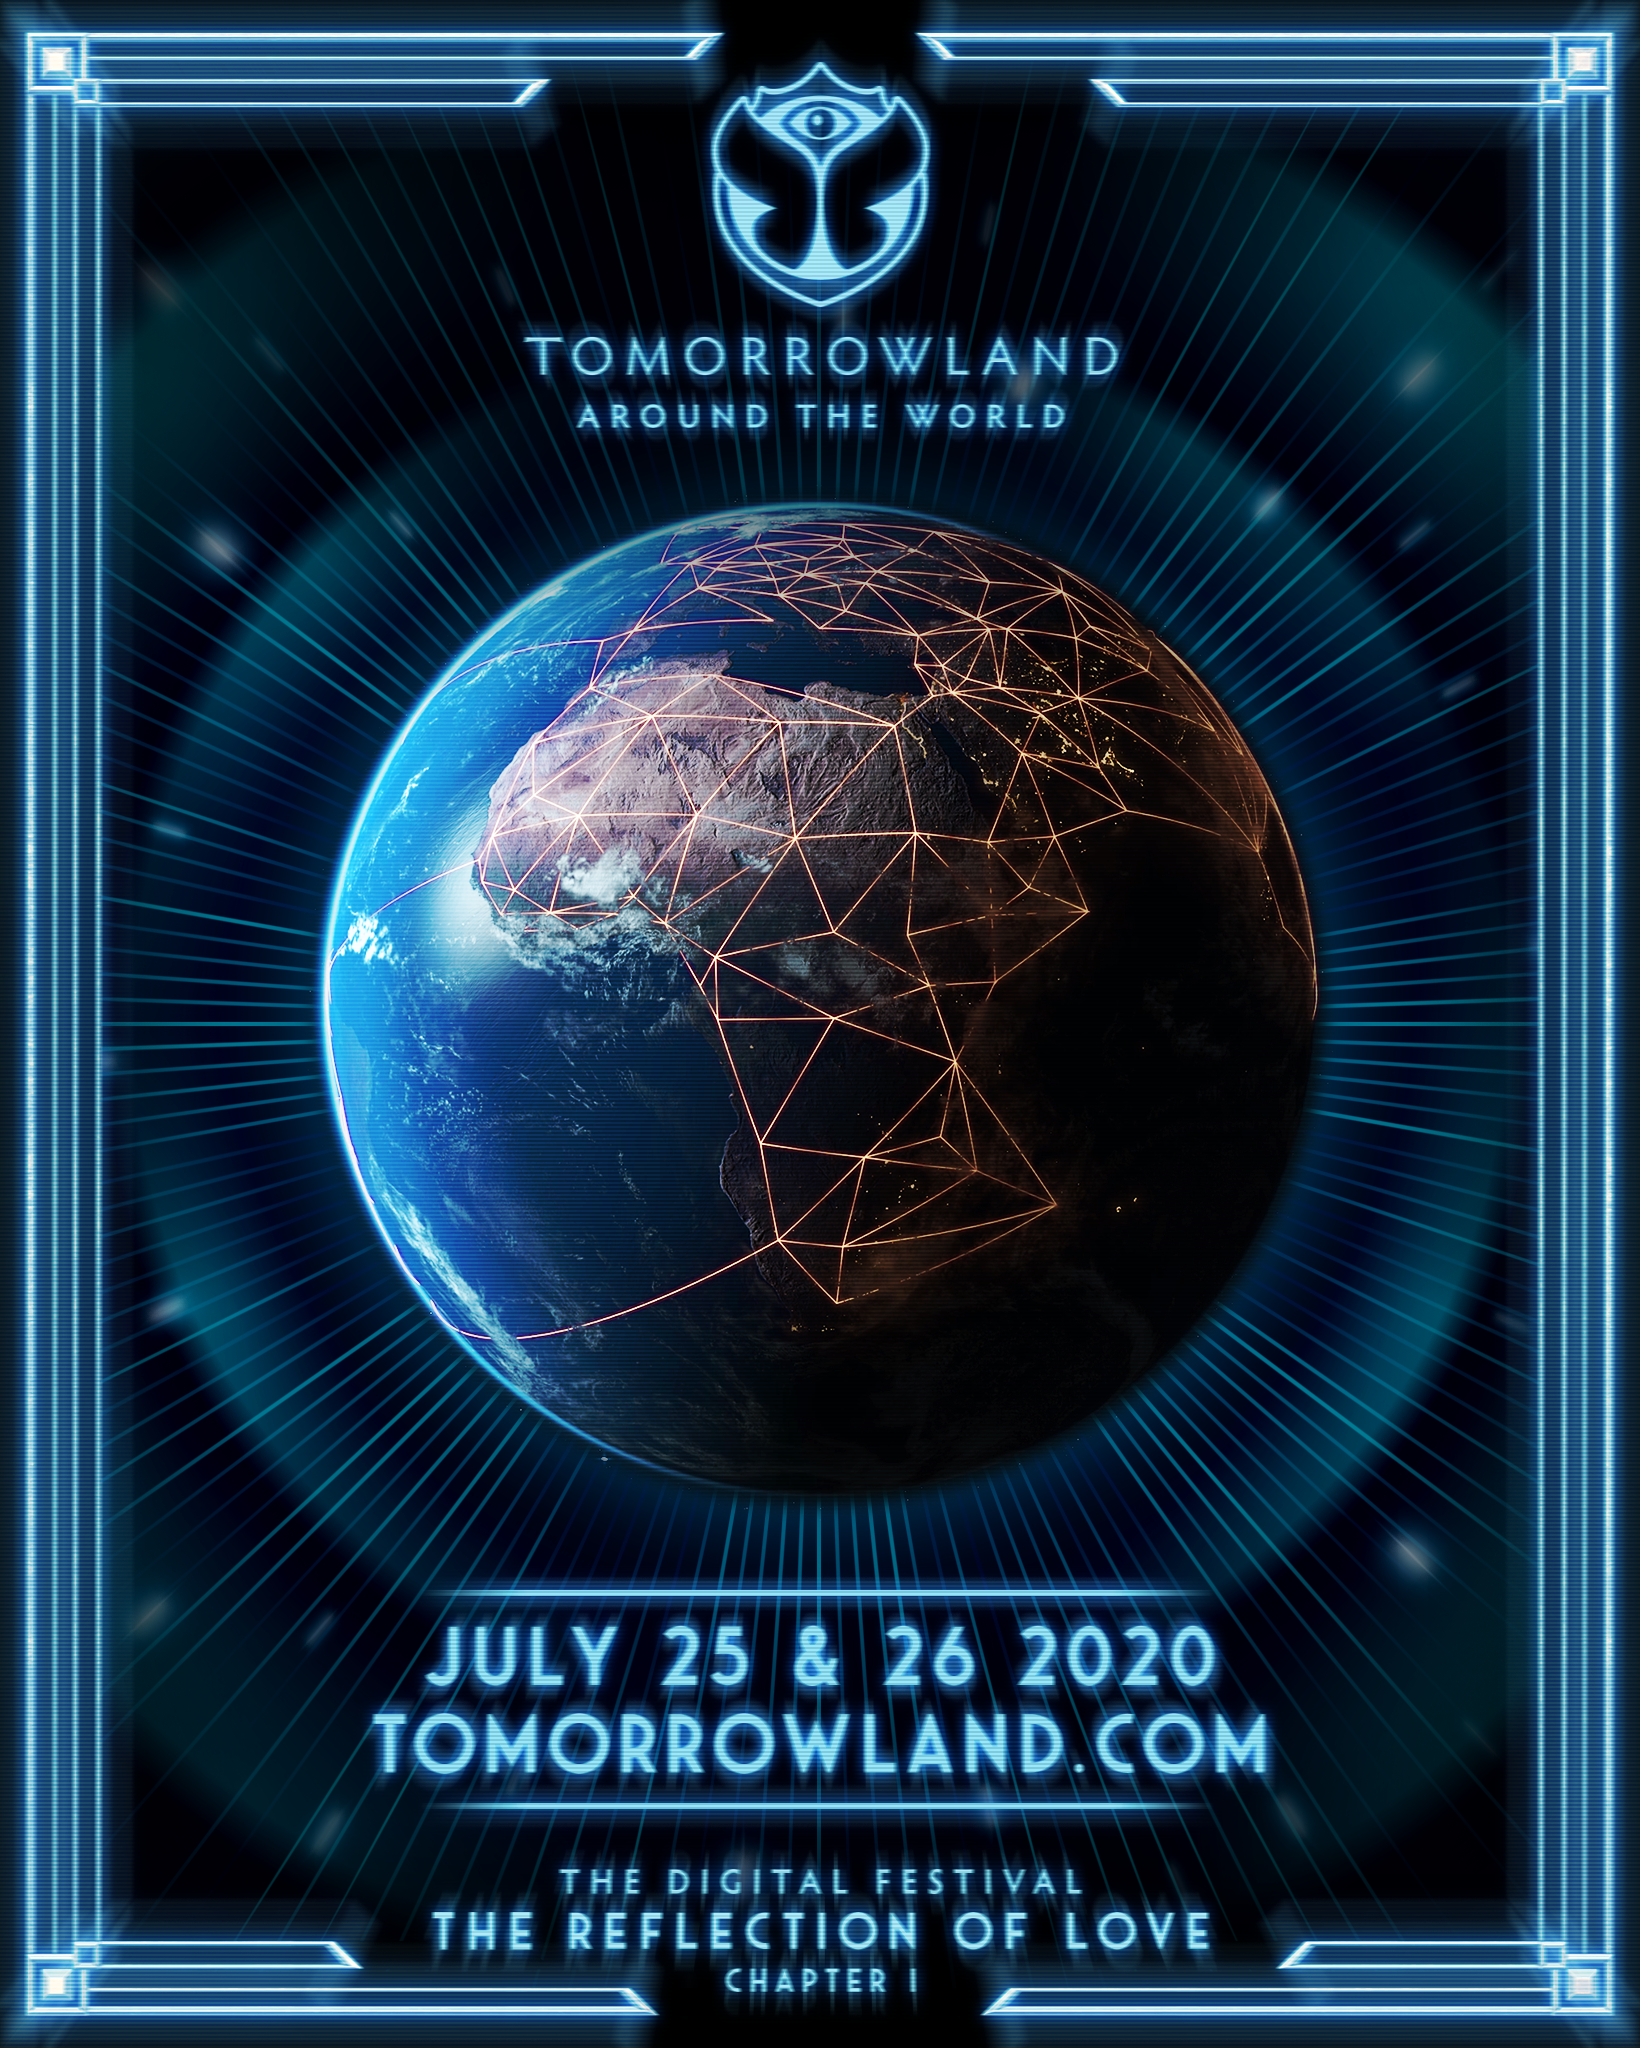 Katy Perry and Eric Prydz at Tomorrowland 2020